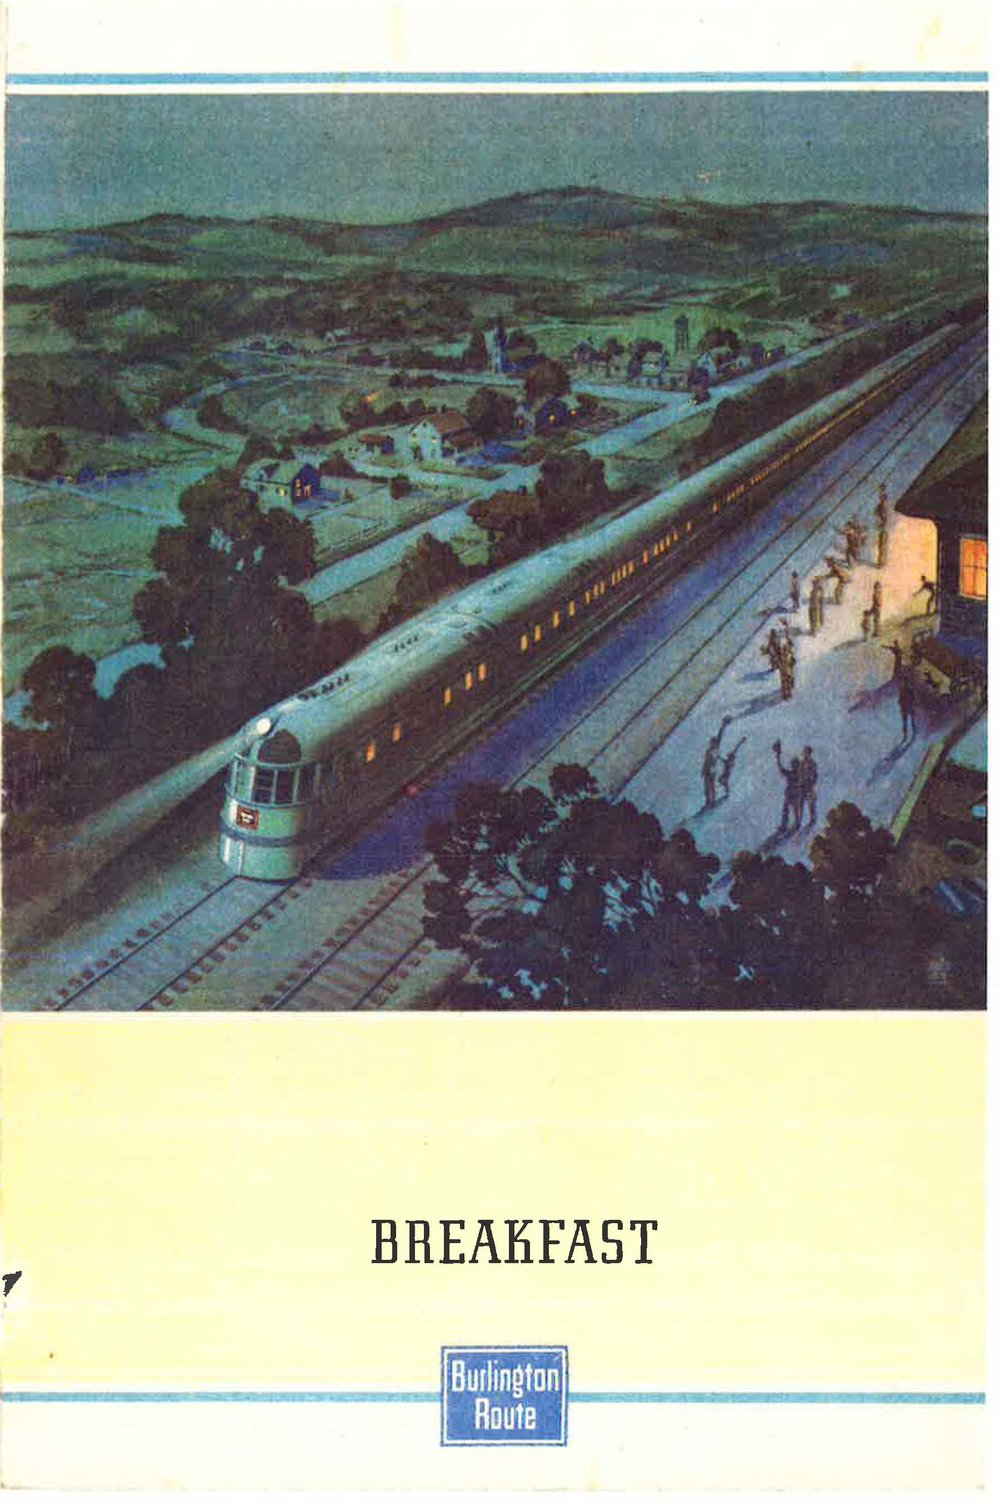 Burlington+Denver+Zephyr+Breakfast+Menu+1-44 1a.jpg